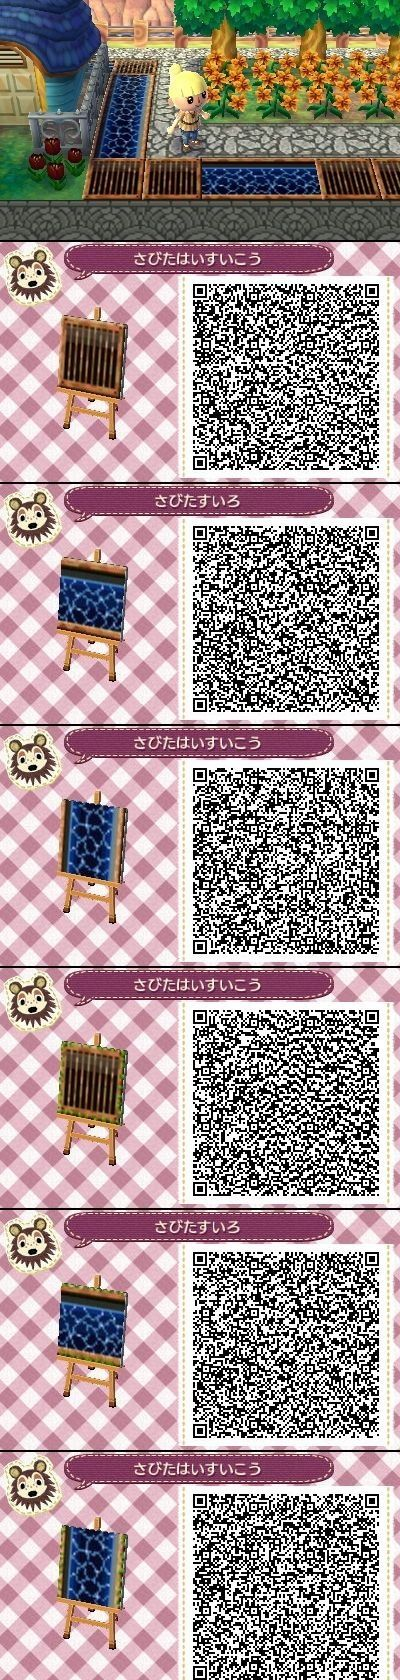 17 Best Ideas About Animal Crossing Qr On Pinterest